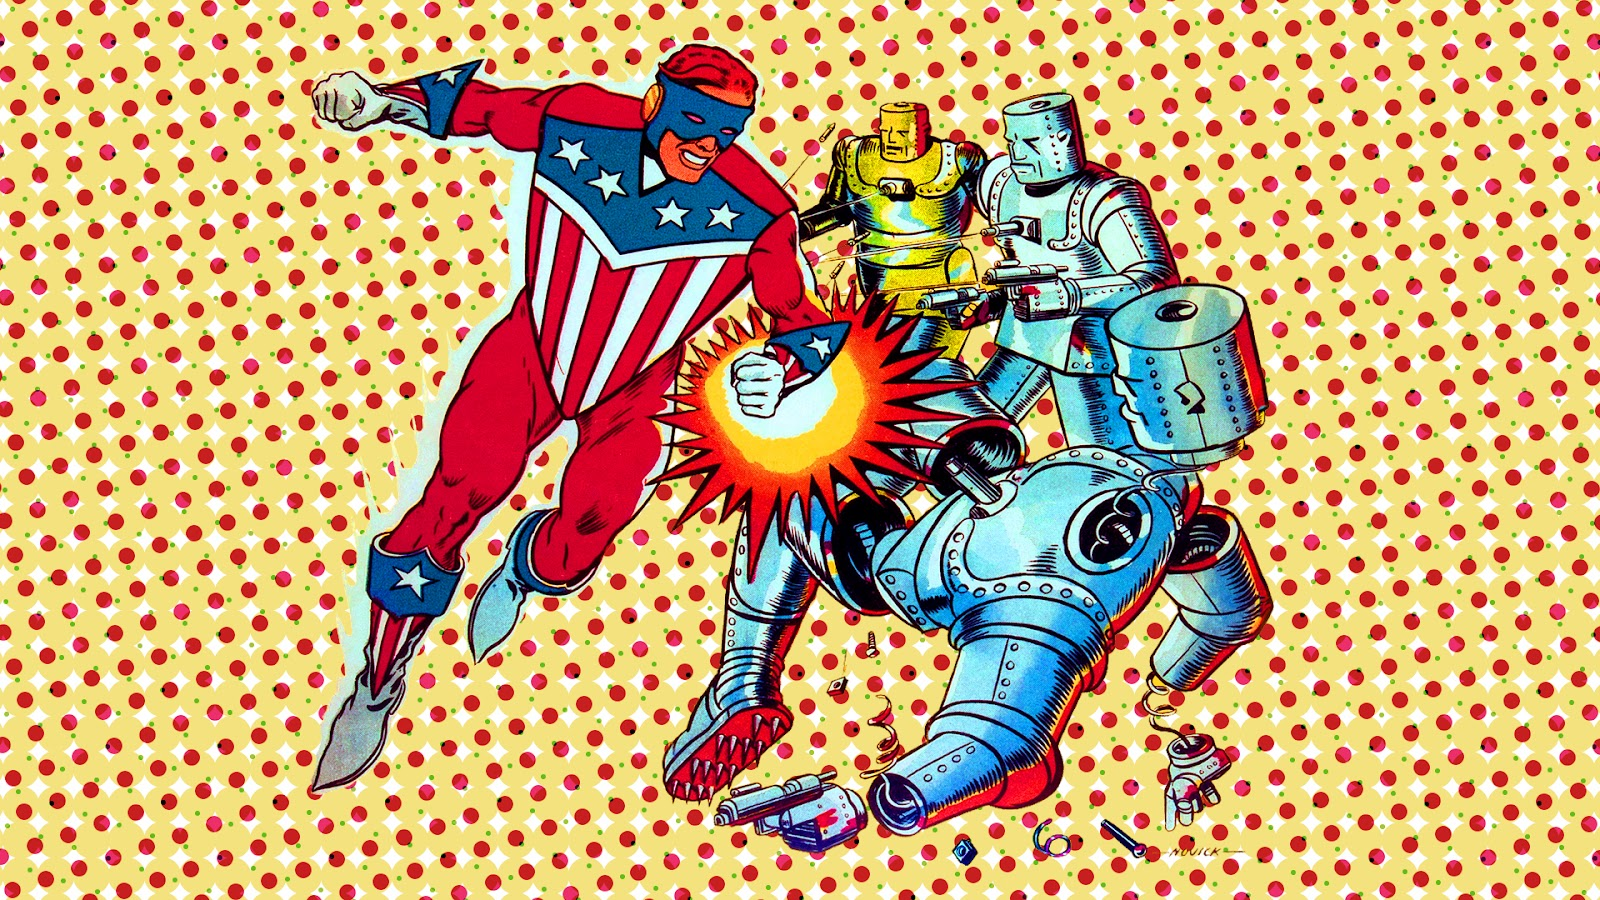 DESKTOP WALLPAPER: COMIC BOOK SUPERHEROES OF THE GOLDEN AGE